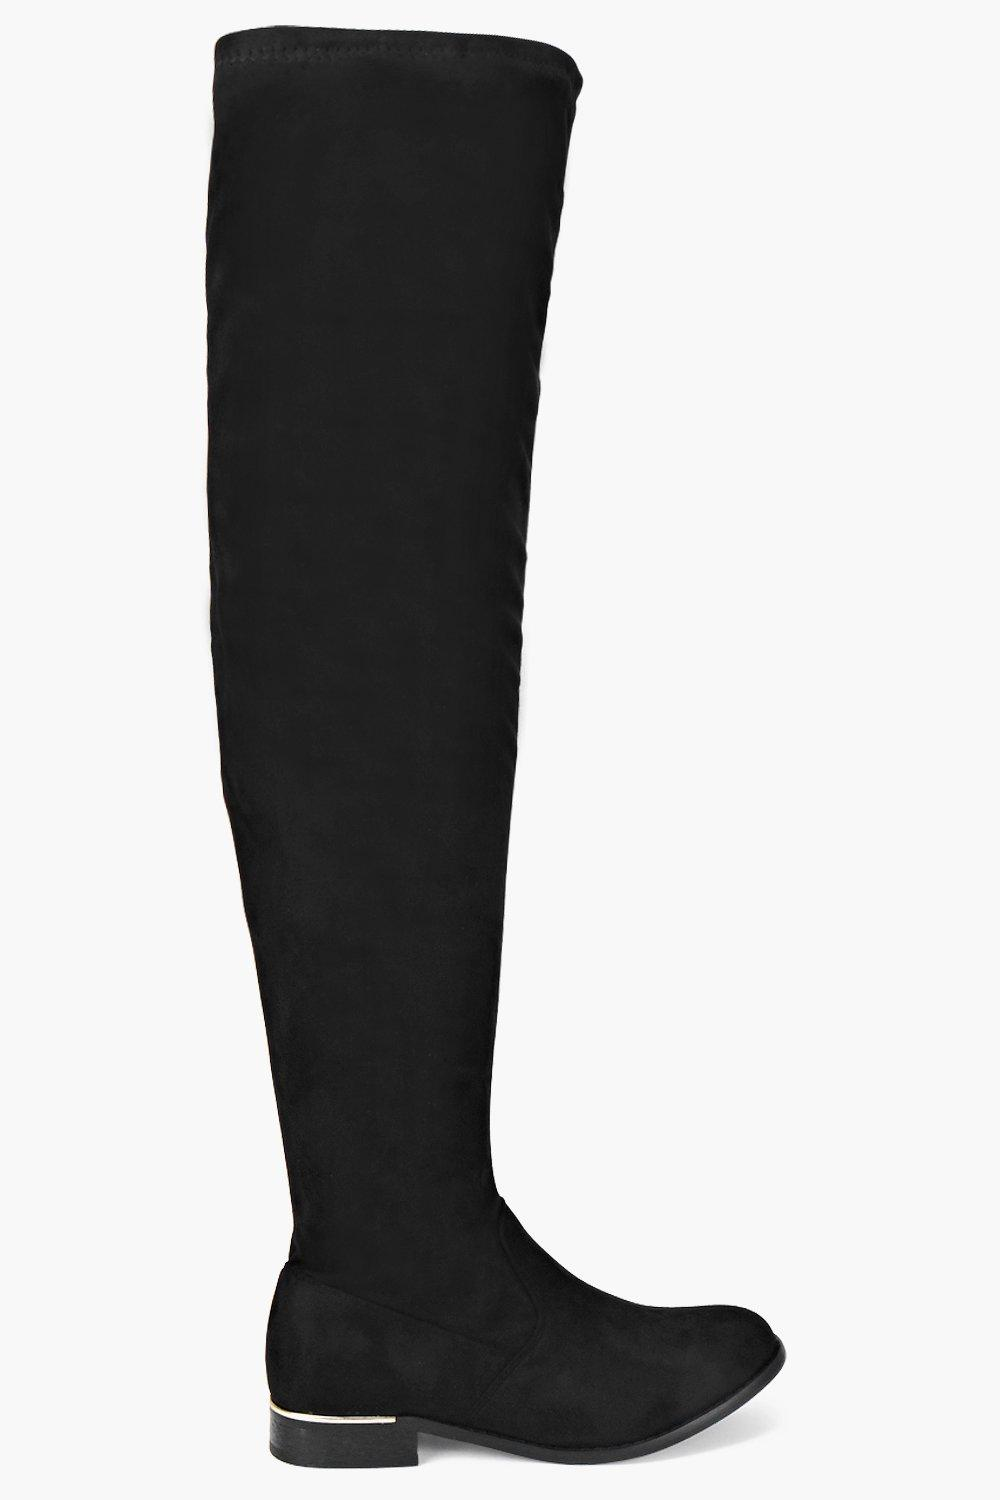 Scarlett Stretch Knee High Flat Boot